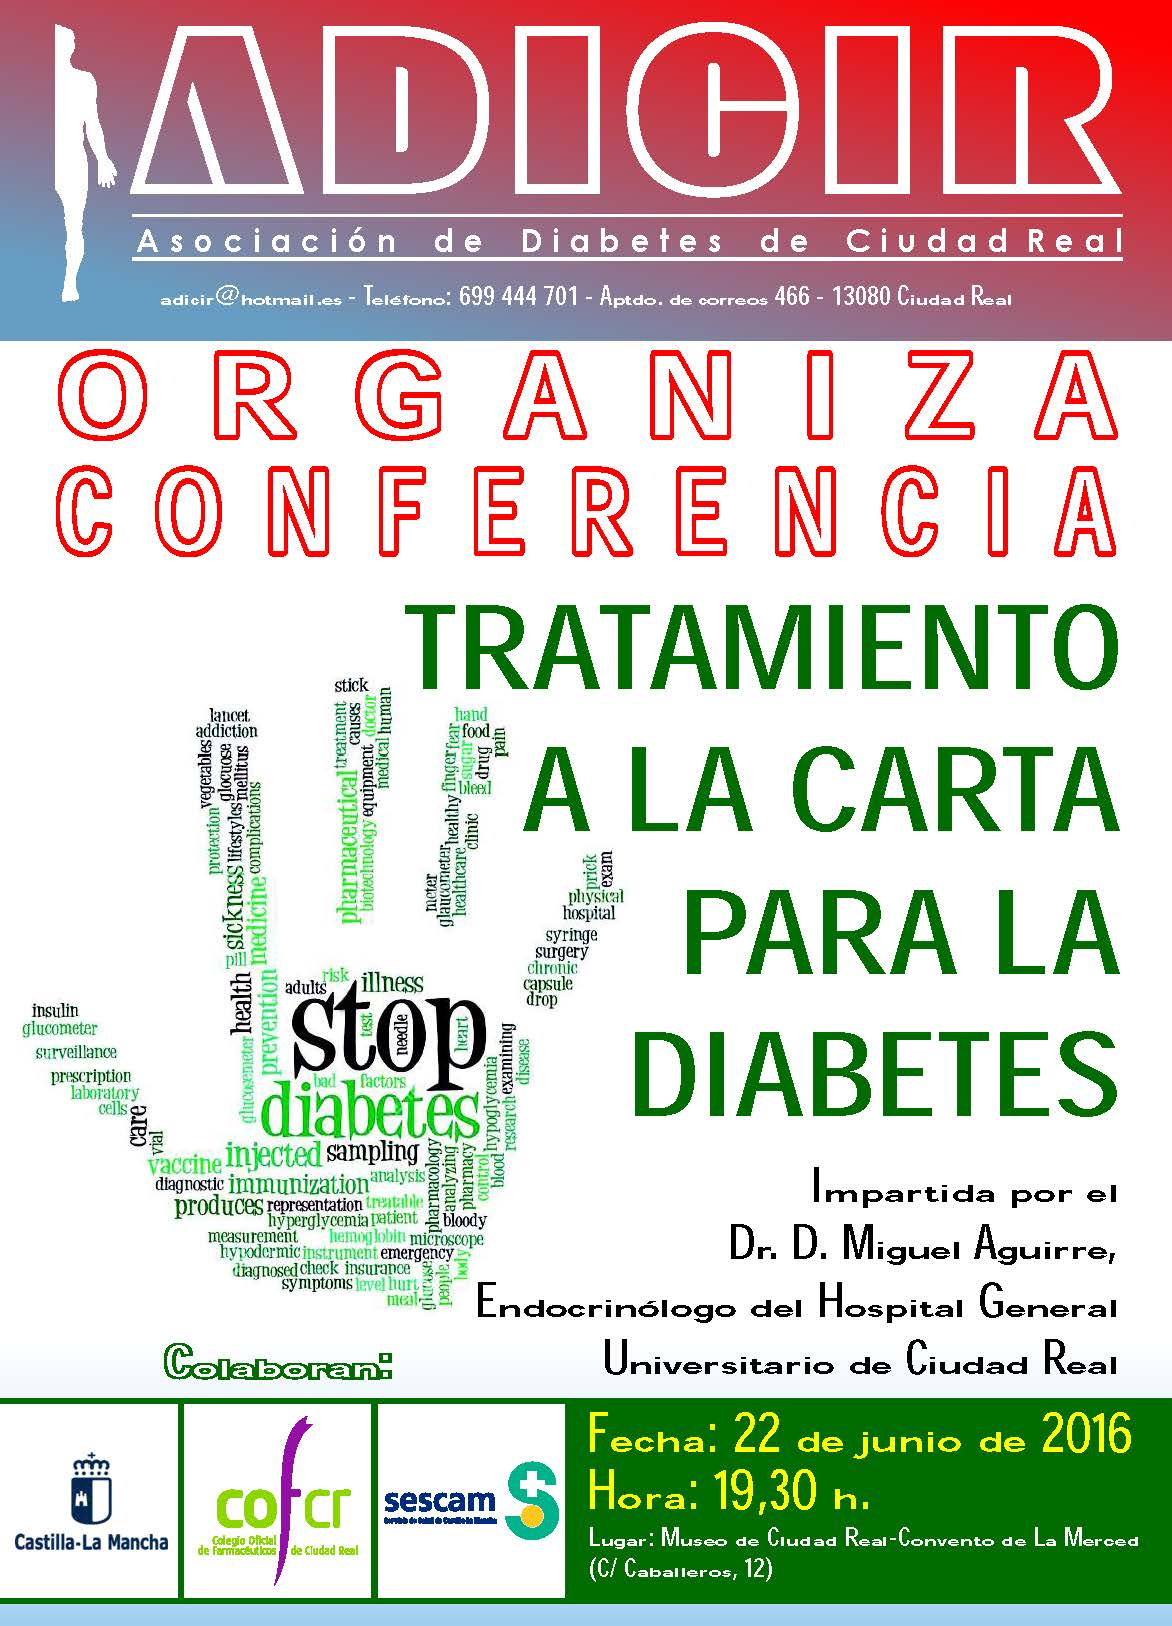 Tratamiento a la carta para la diabetes